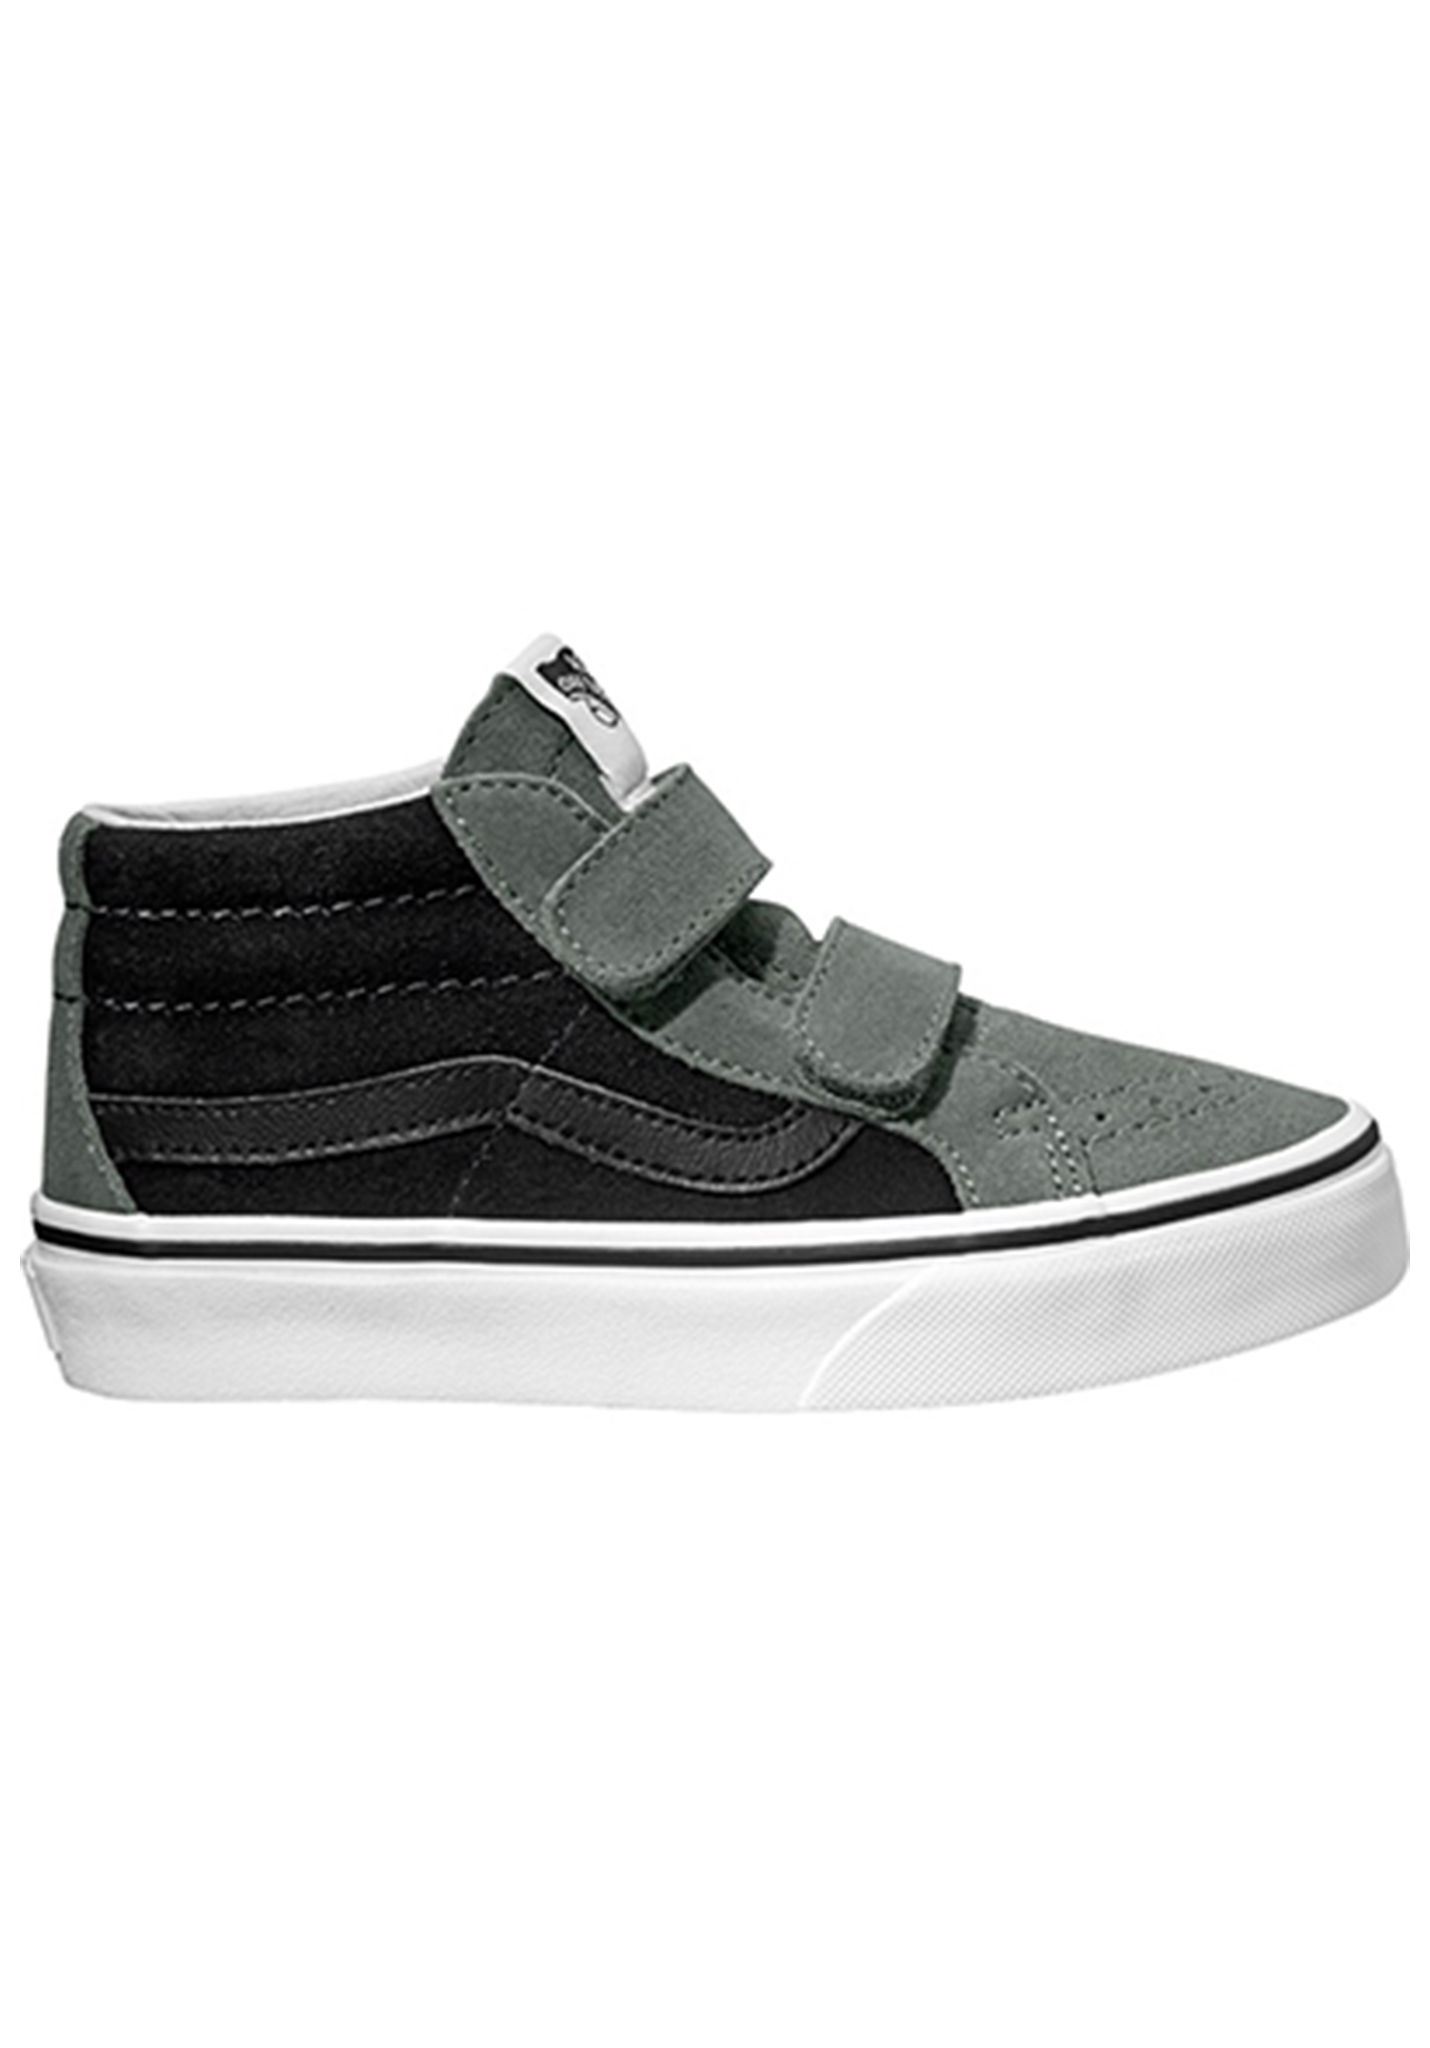 99ec84d87d4 Vans Uy Sk8-Mid Reissue V - Sneakers - Zwart - Planet Sports